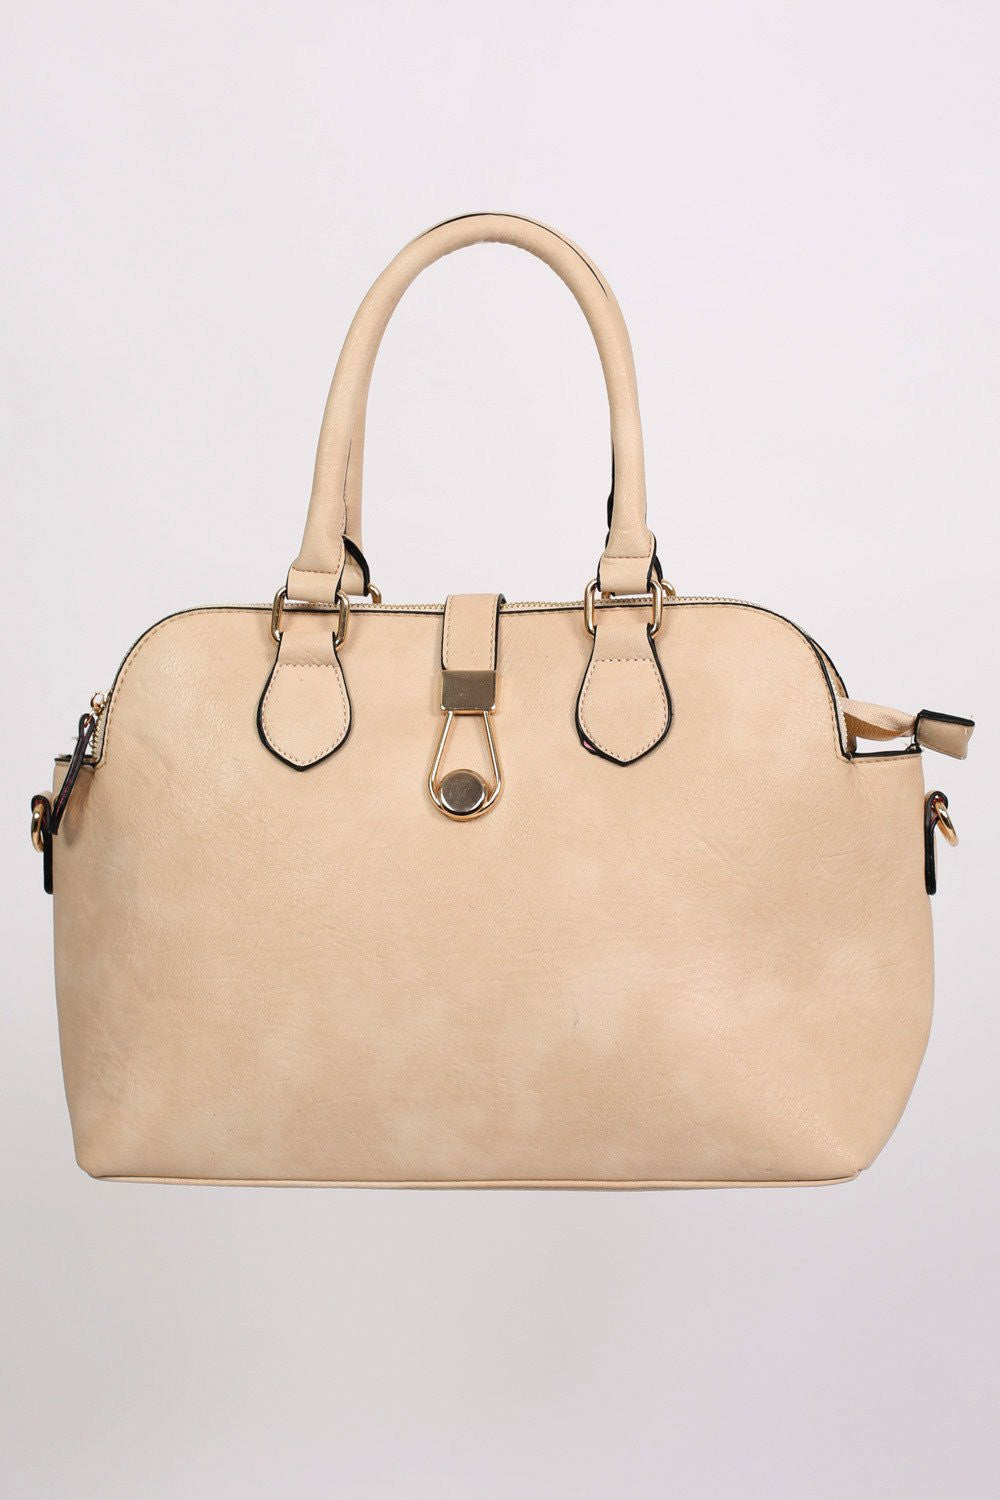 Two Handle Bowler Tote Bag in Champagne 5